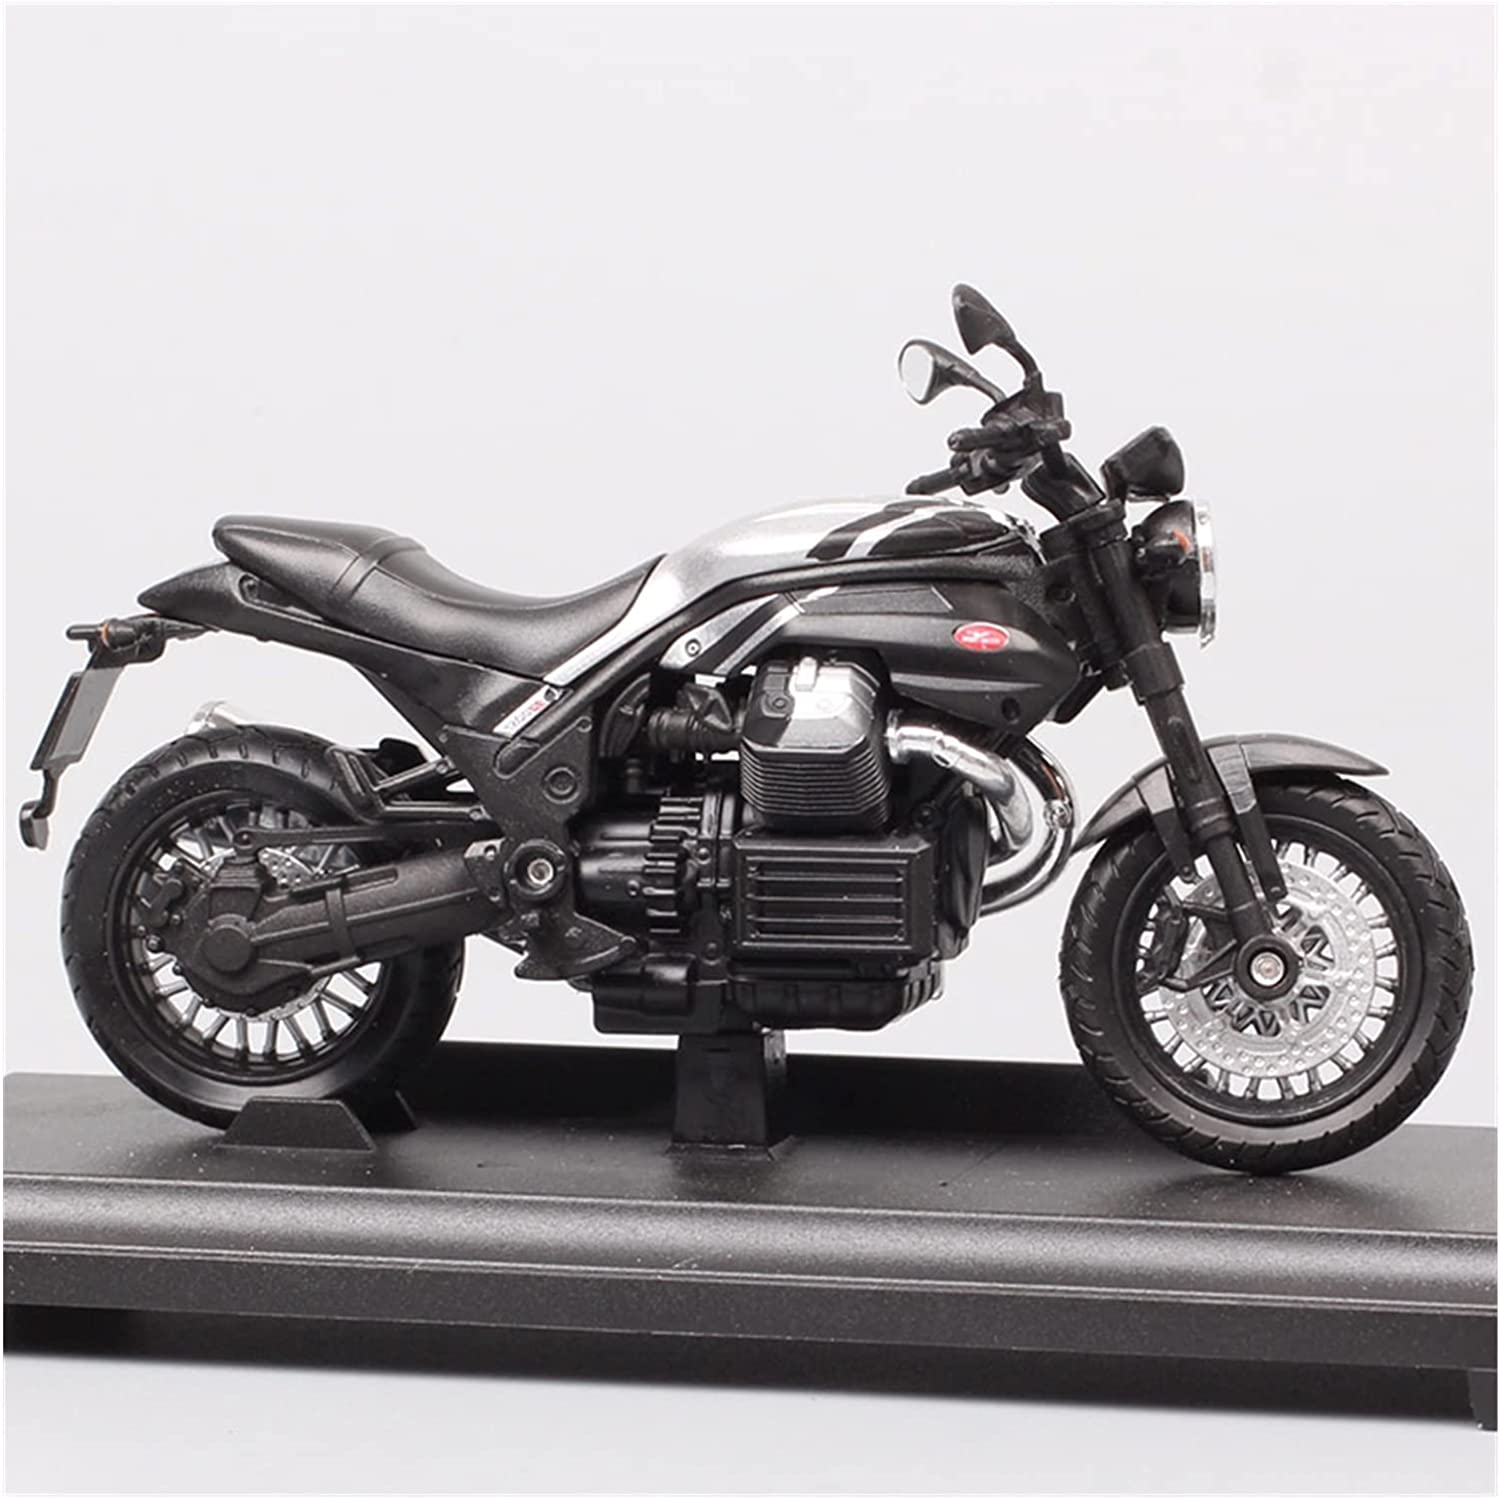 Motorcycle Alloy Decoration Toys 1:18 Max 53% OFF for Las Vegas Mall Guzzi Moto Griso 1200